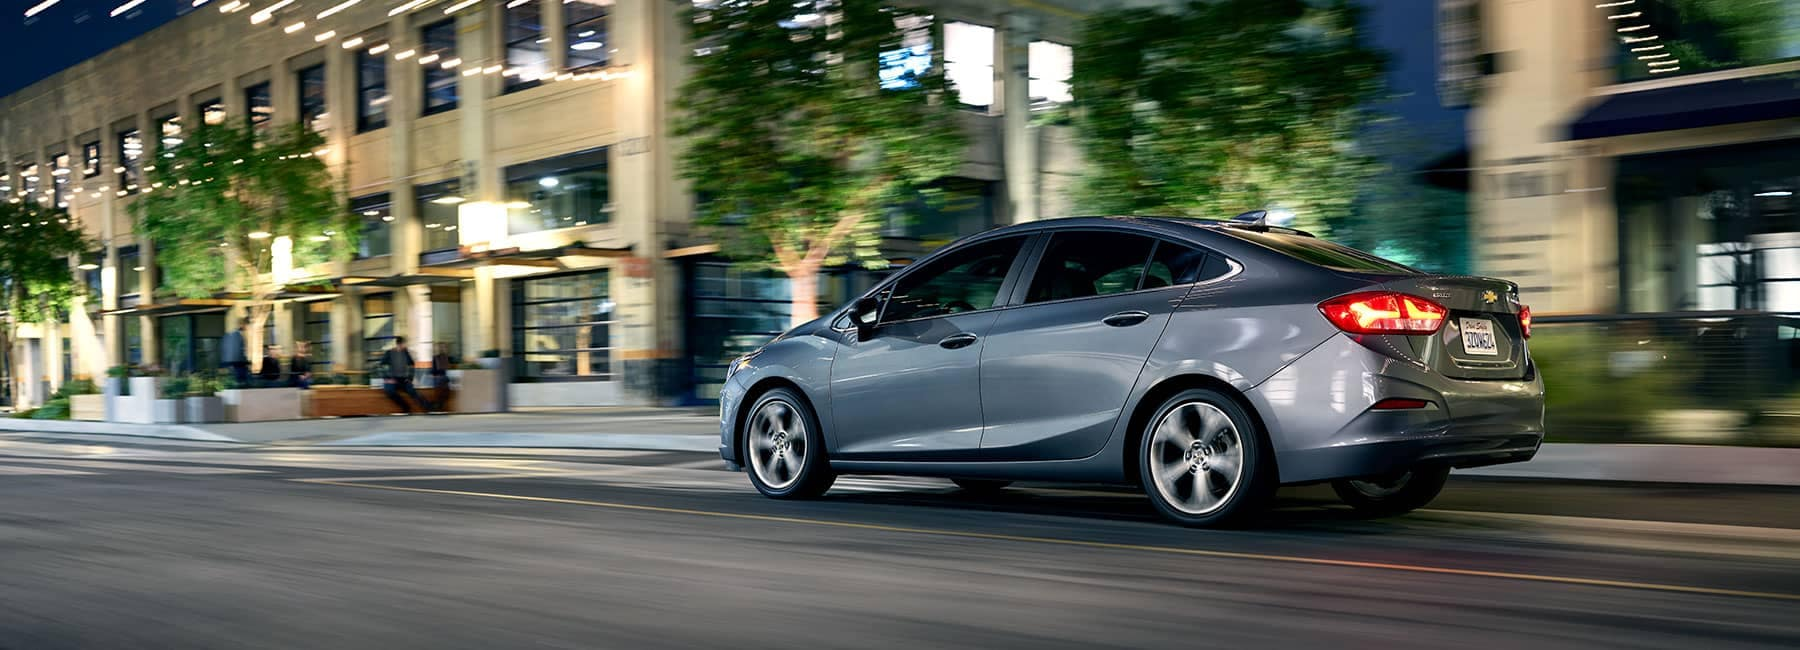 2019 Chevrolet Driving Down a City Street